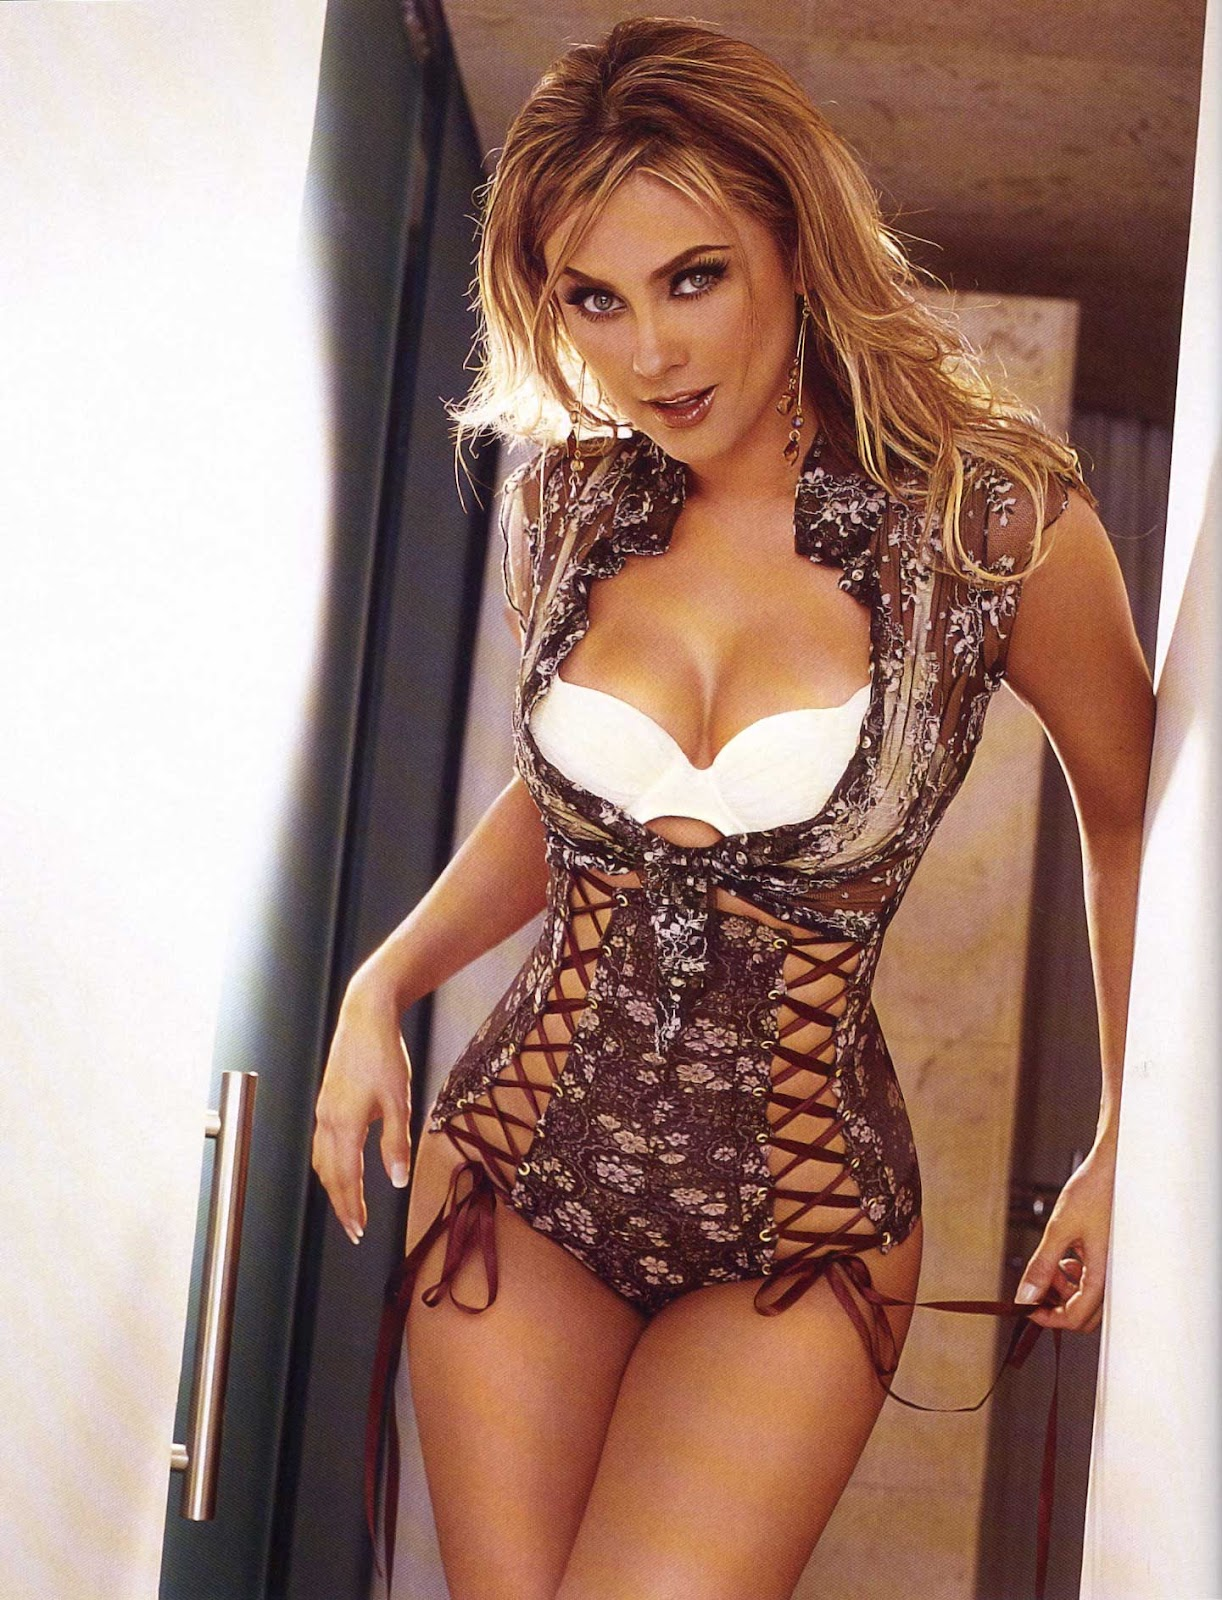 Aracely Arambula Is A Meican Actress Singer And Model Born In